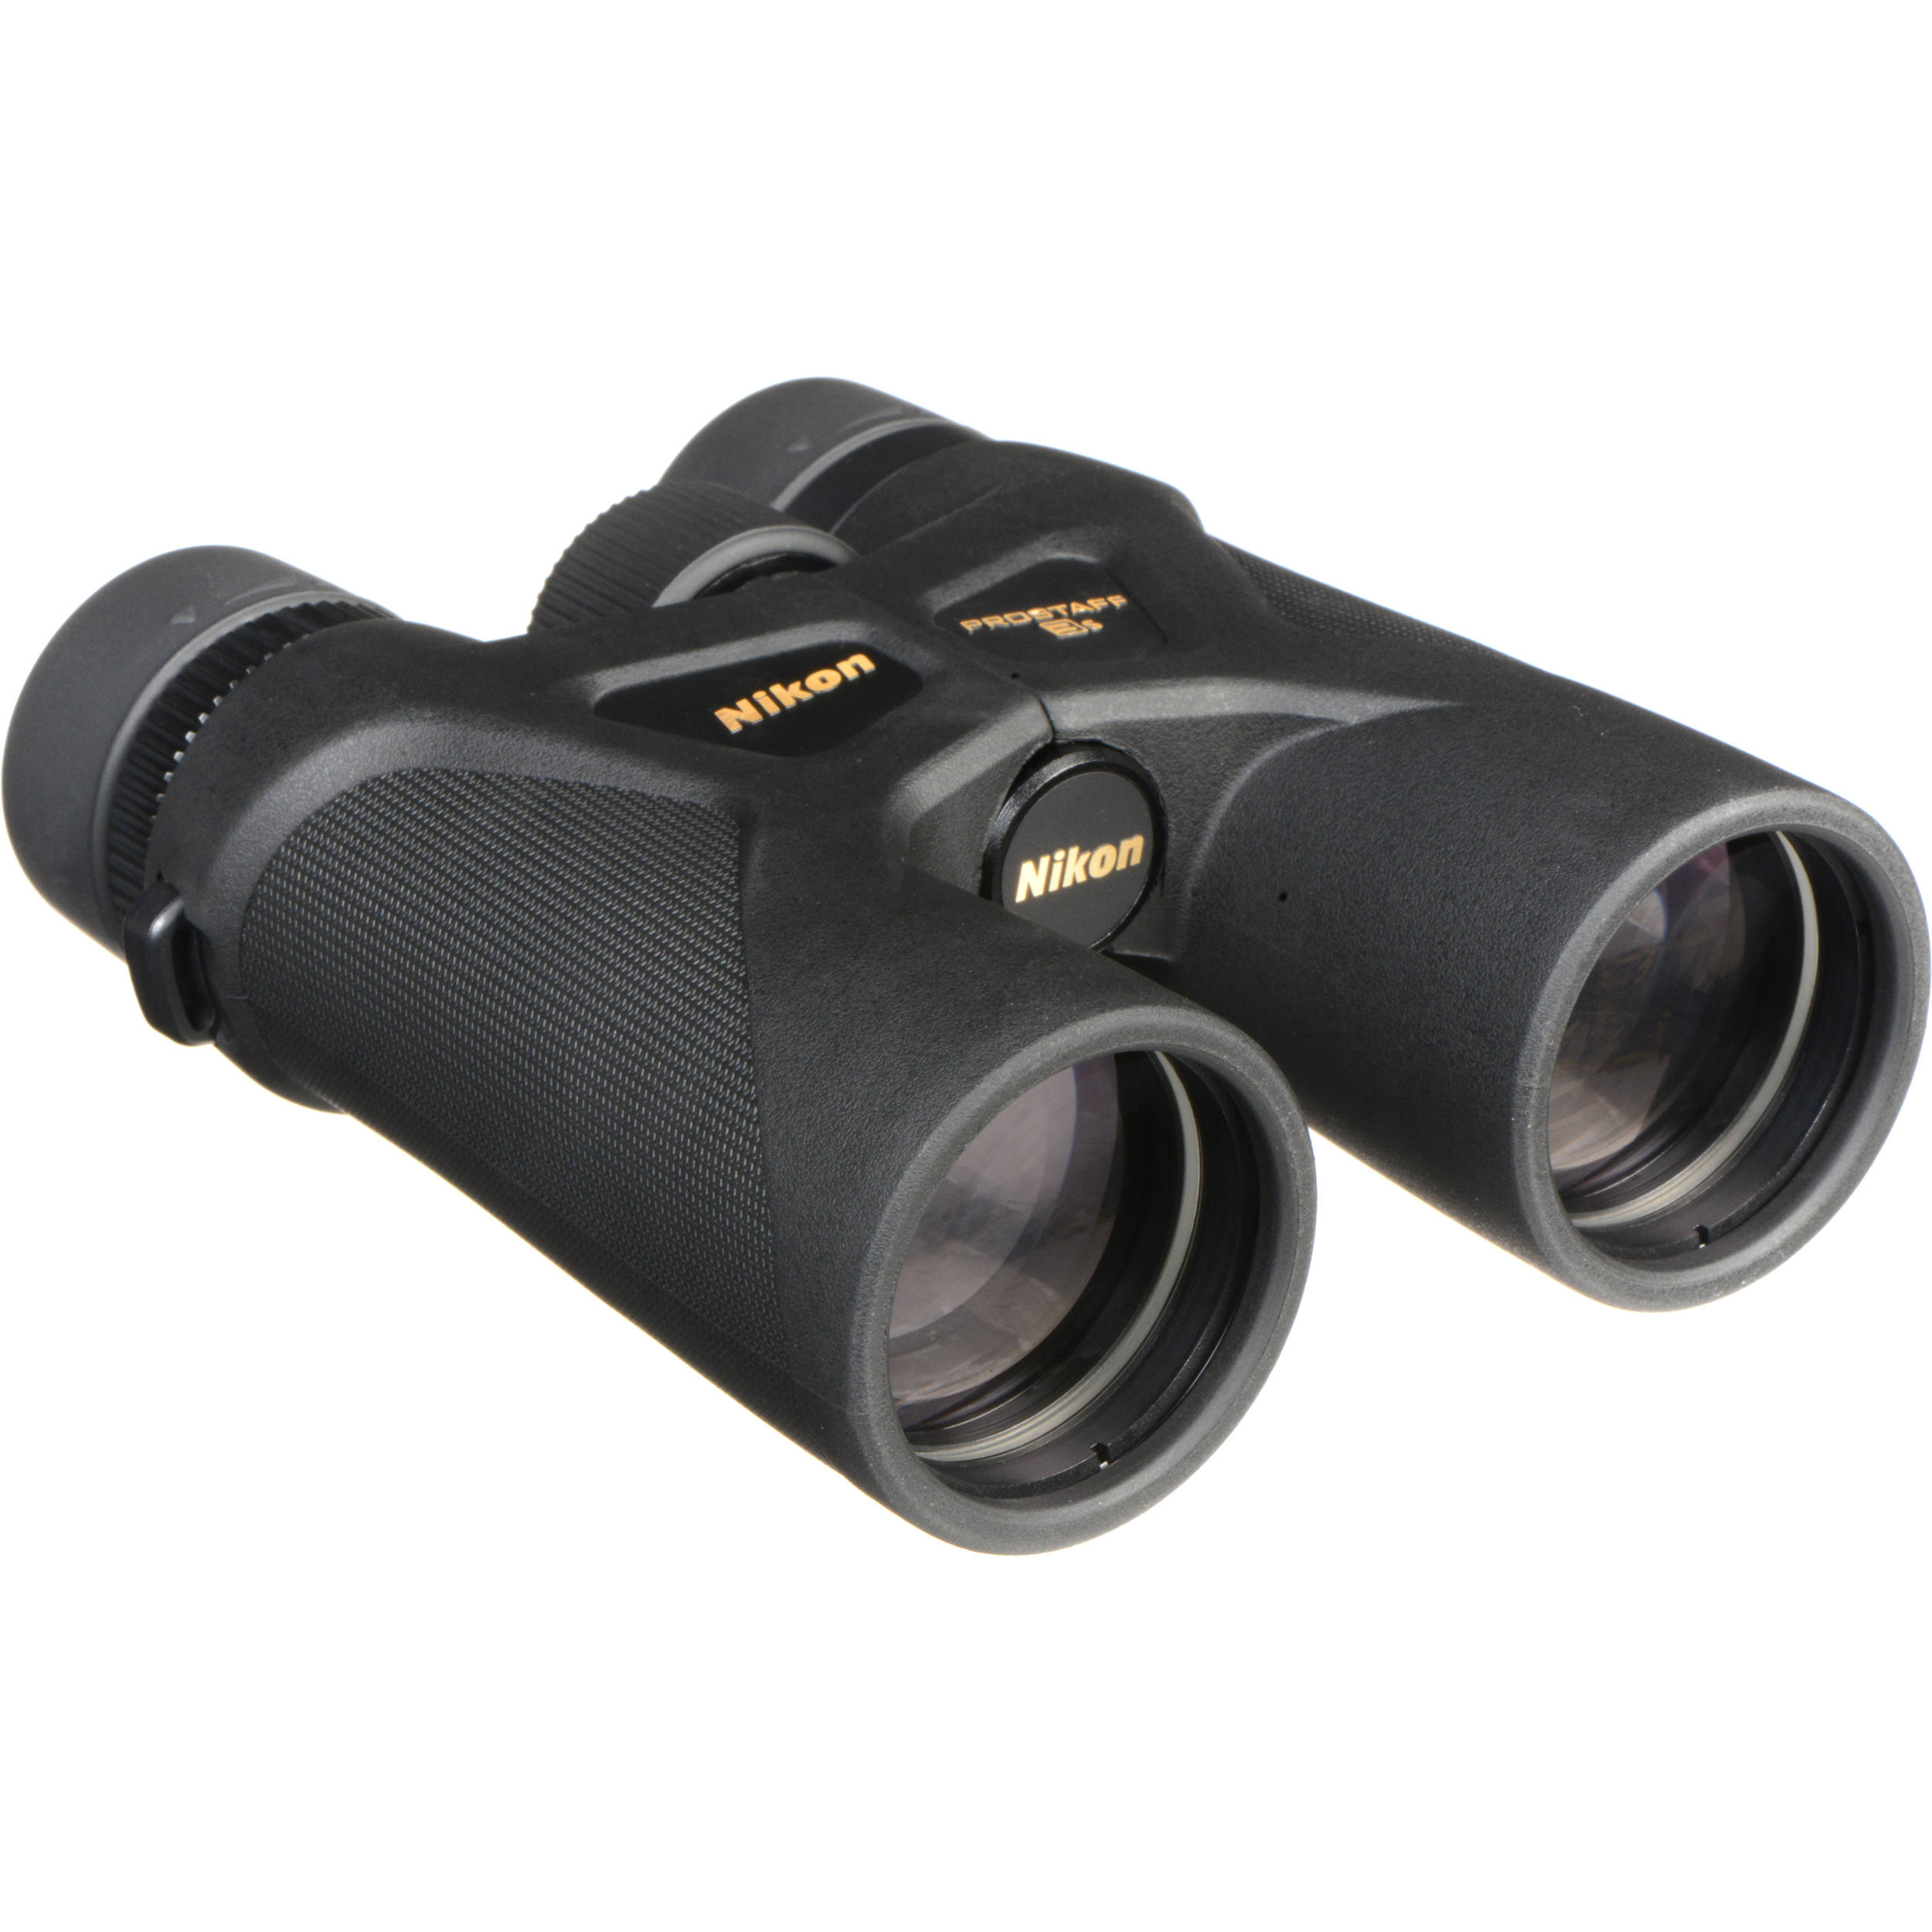 Nikon 10x42 ProStaff 3S Binoculars (Black) 16031 B&H Photo Video